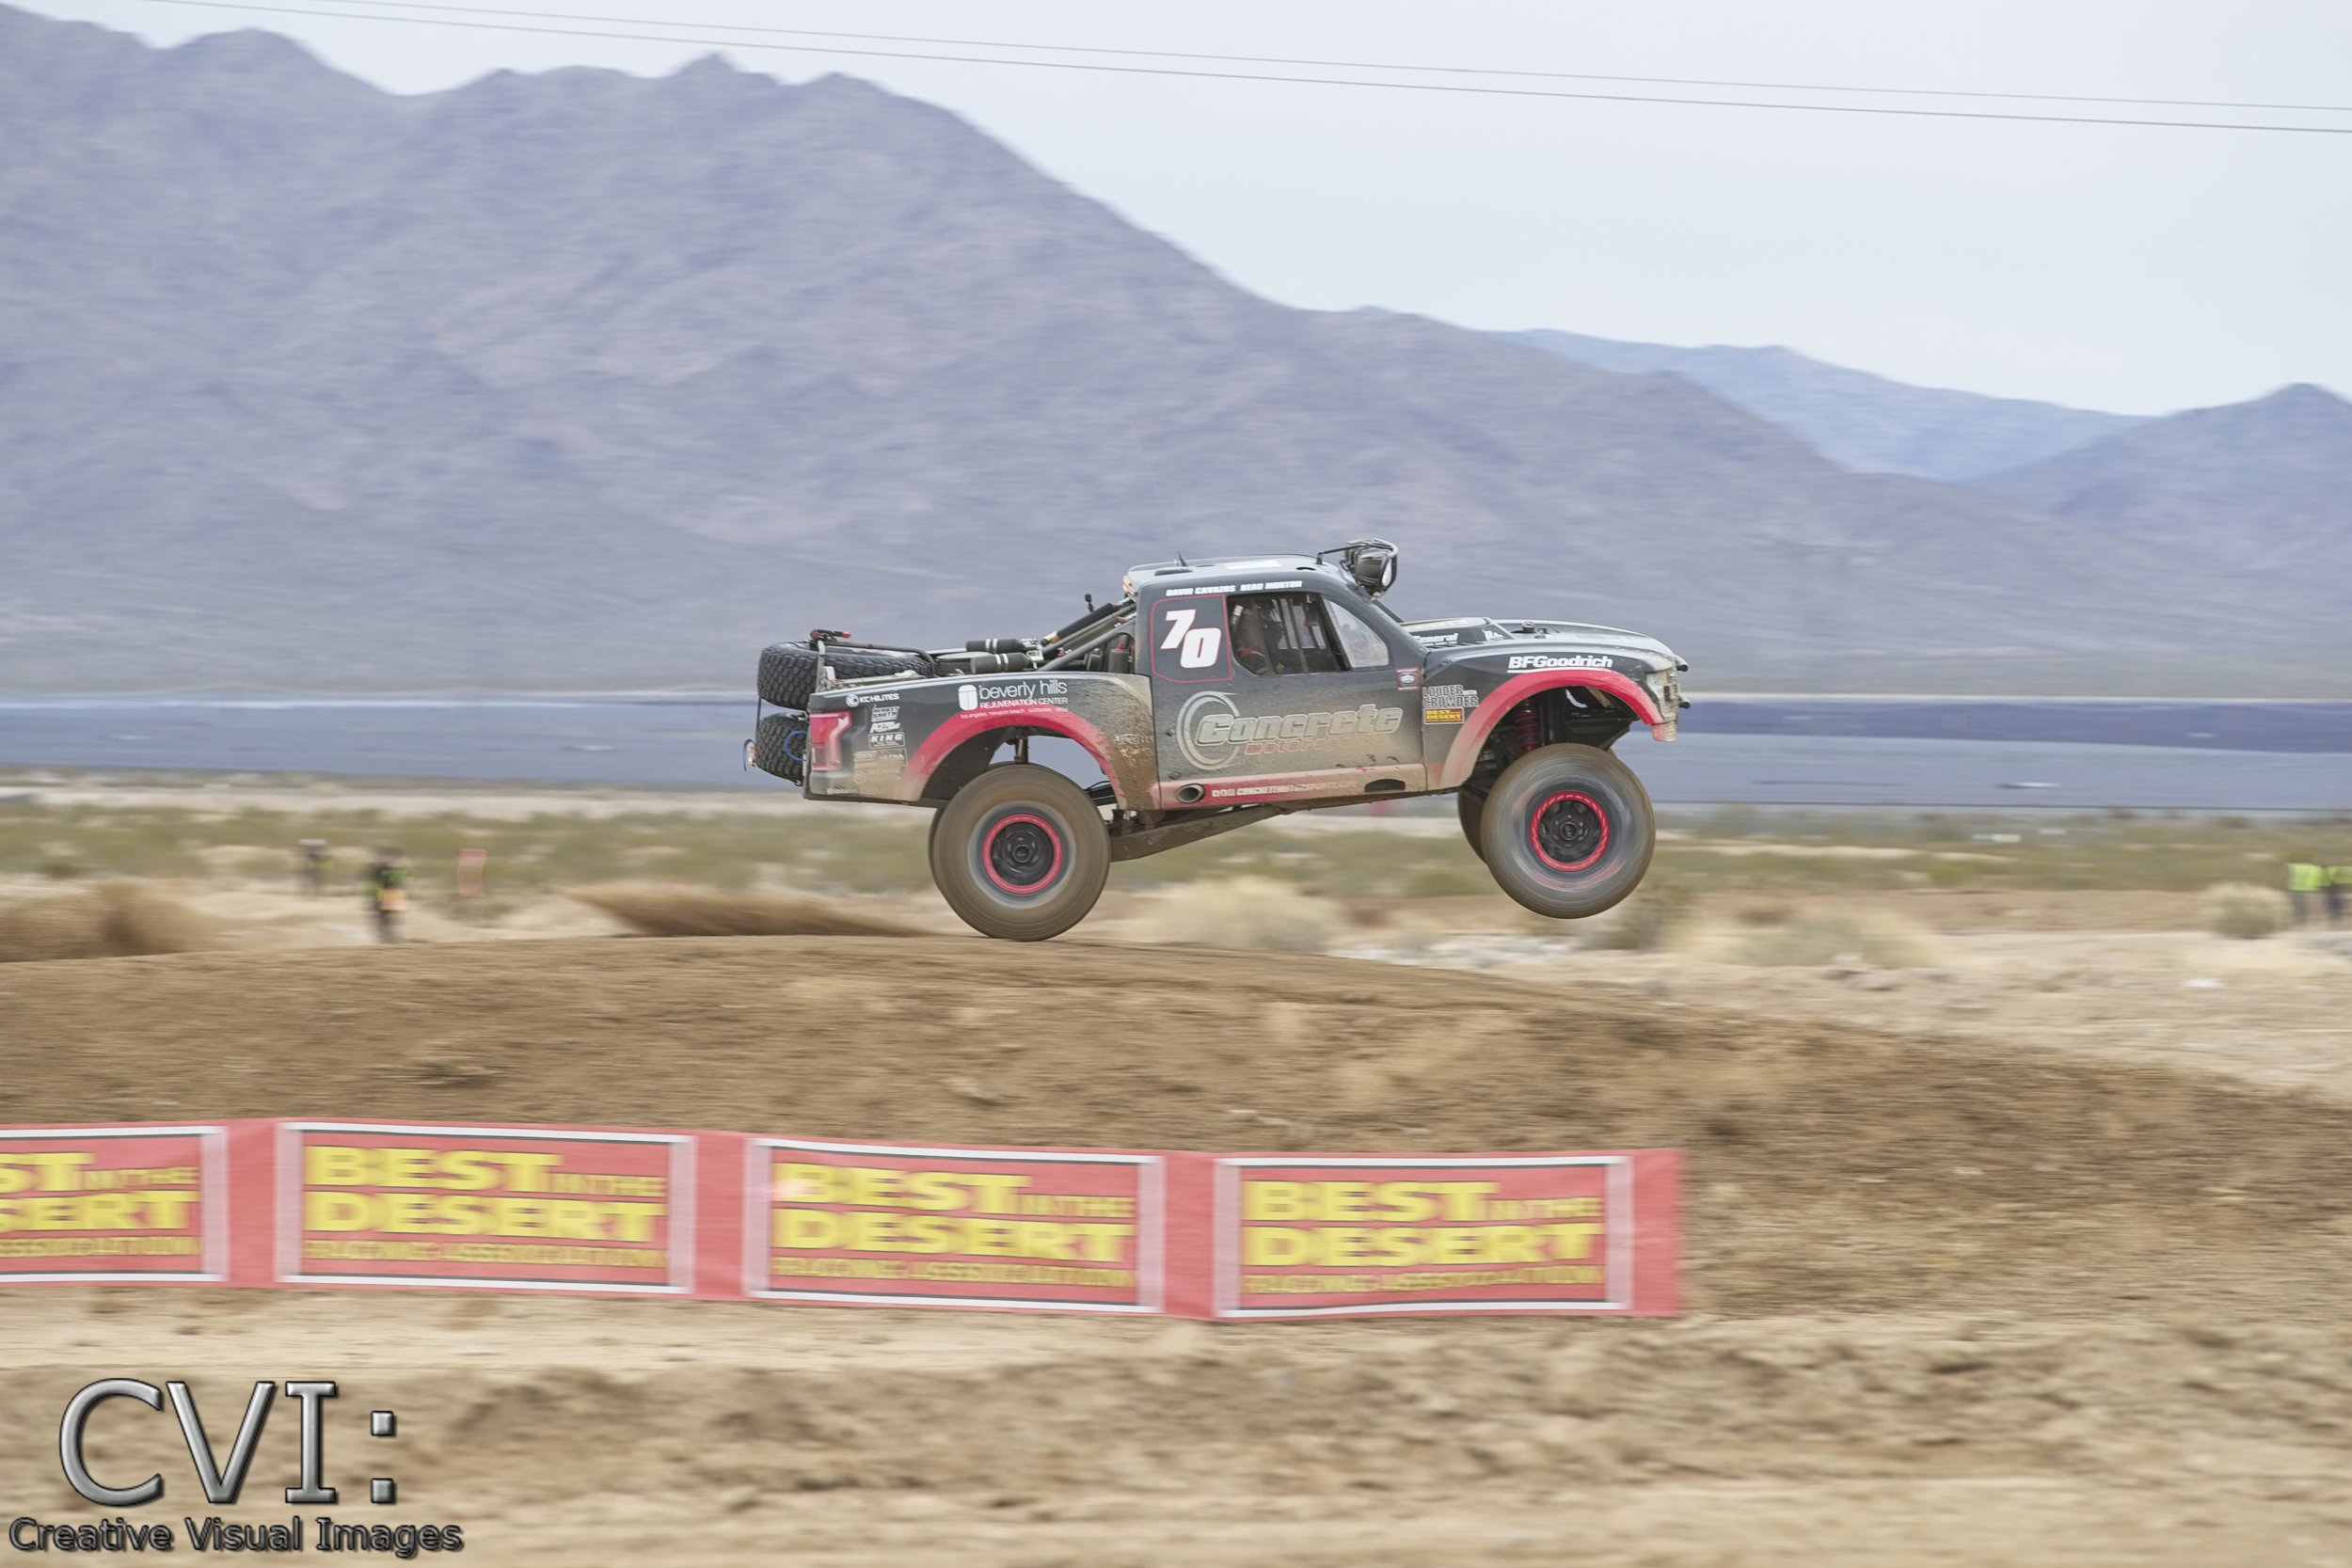 Mint40020190310201226AW6I2324 Unedited Preview.jpg